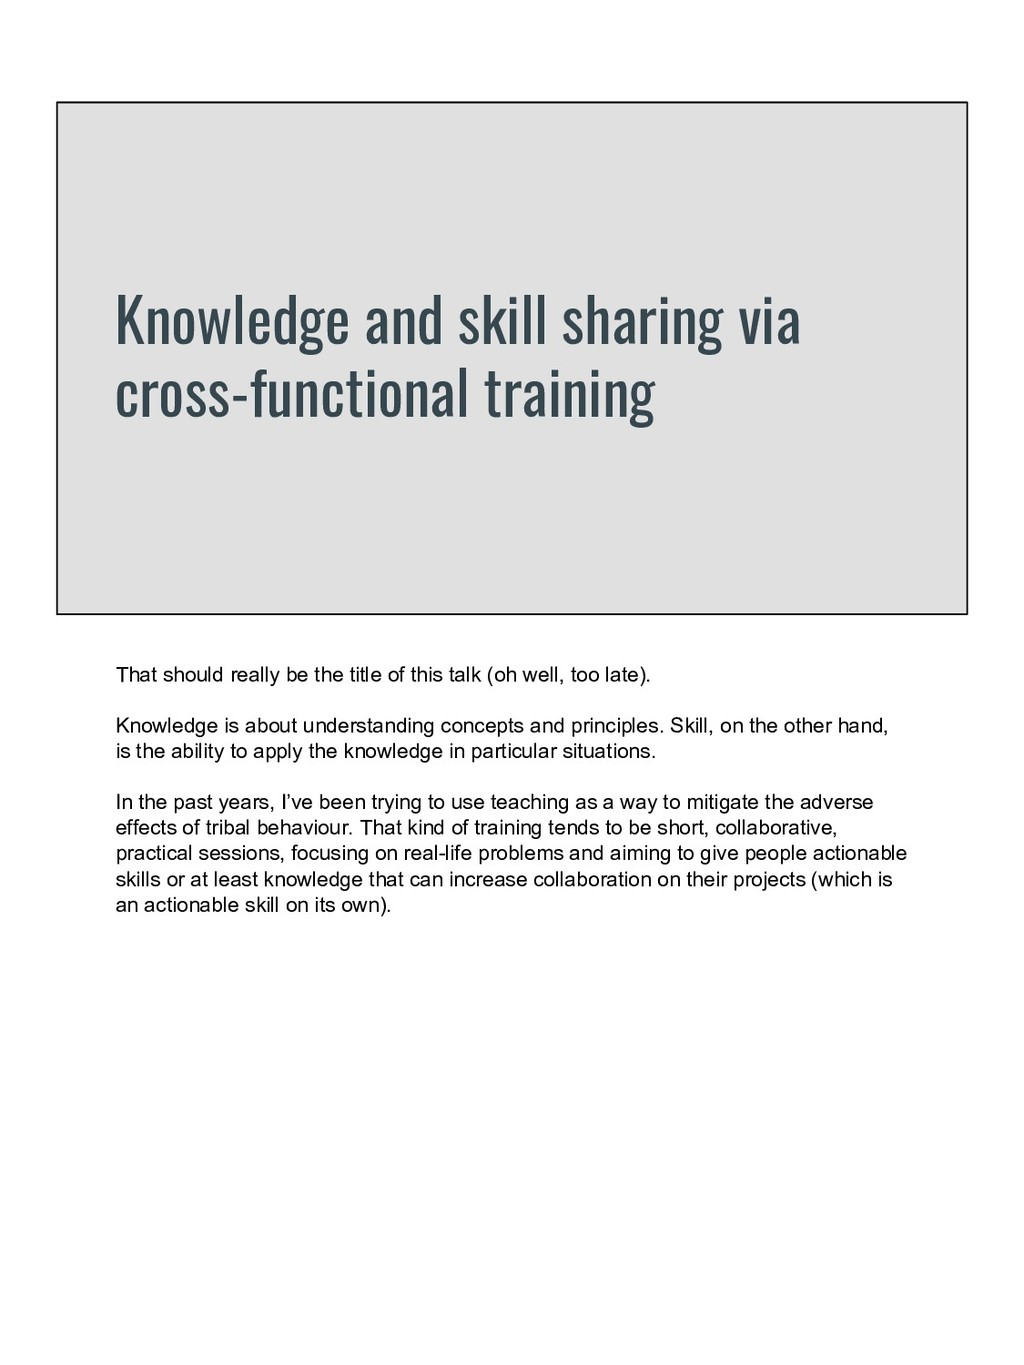 Knowledge and skill sharing via cross-functiona...